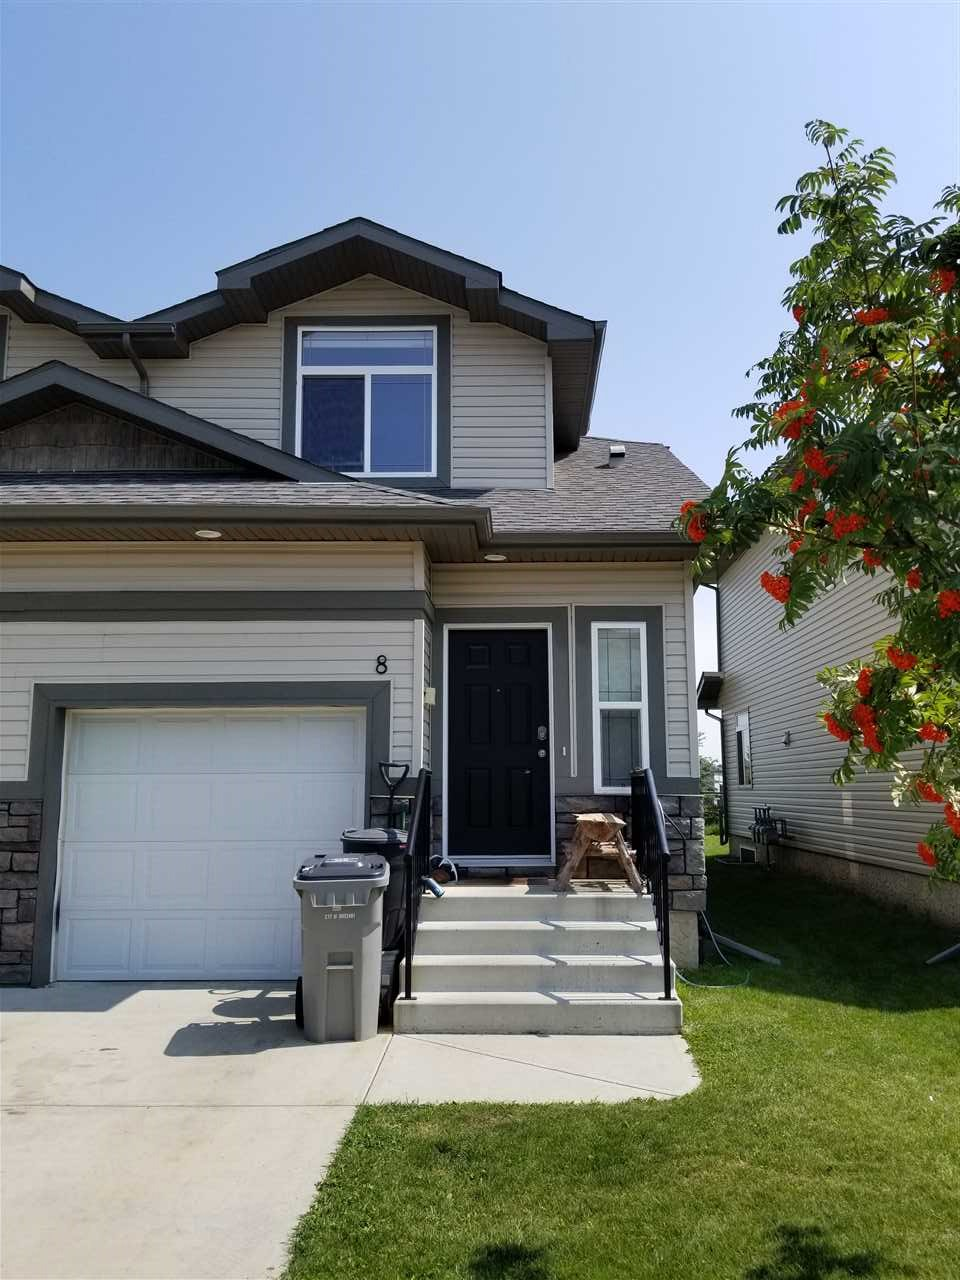 Removed: 8 - 9511 102 Avenue, Morinville, AB - Removed on 2019-01-28 12:30:12